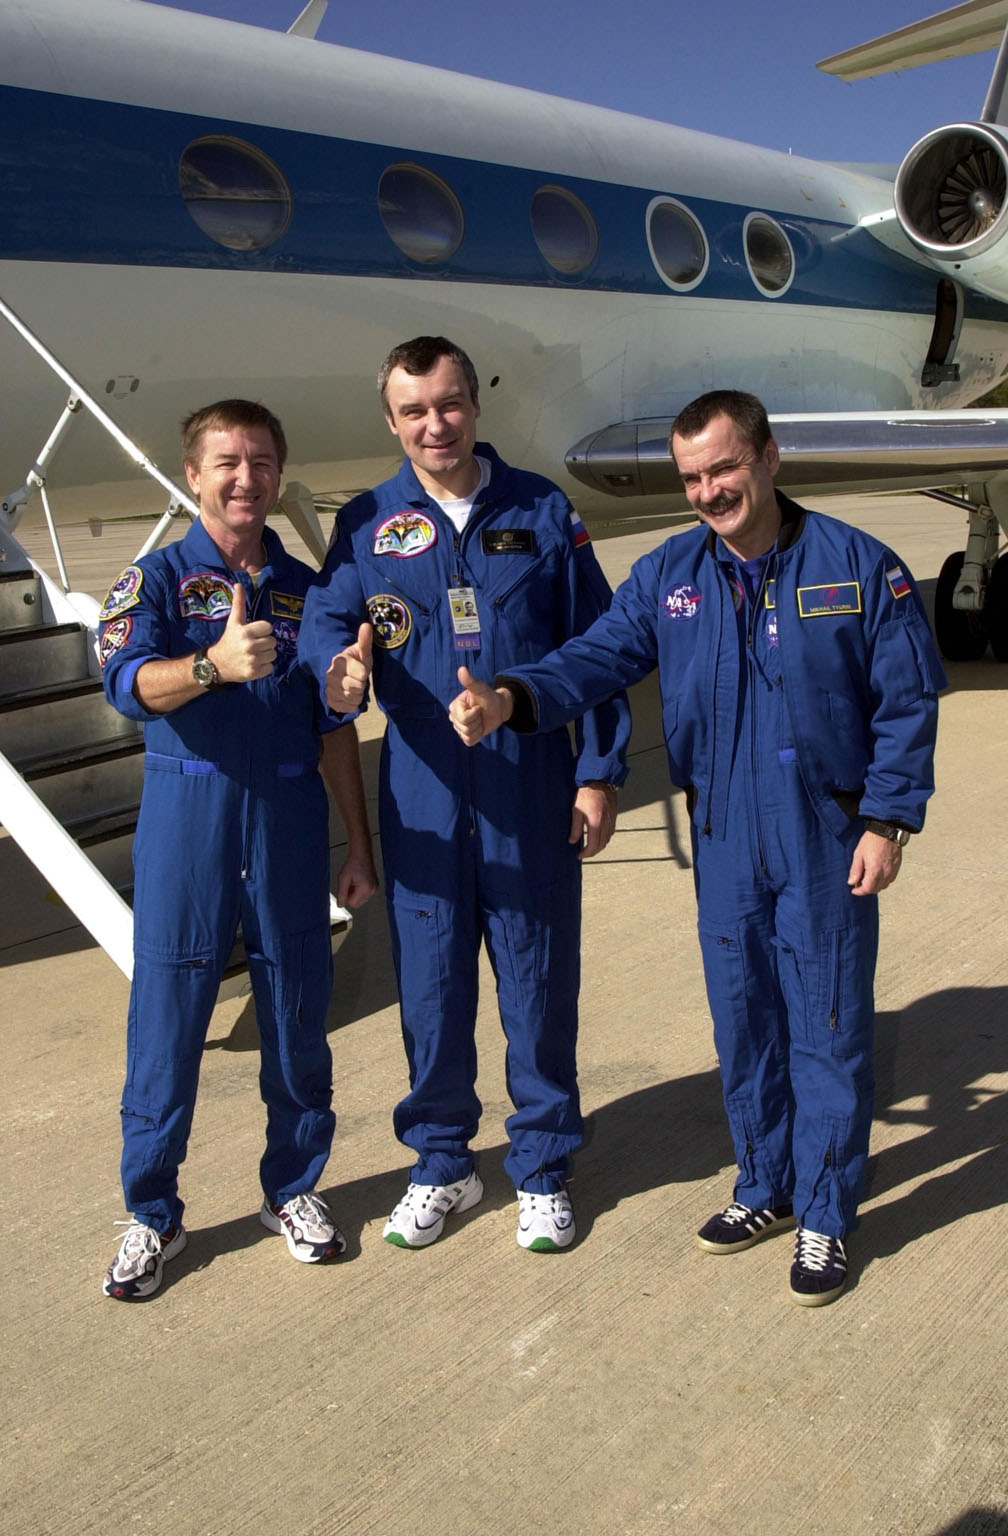 KENNEDY SPACE CENTER, FLA. -- The Expedition 3 crew show thumbs up on the verge of their departure from KSC to Houston. From left to right are Commander Frank Culbertson and cosmonauts Vladimir Dezhurov and Mikhail Tyurin. The three returned to Earth as passengers aboard the orbiter Endeavour, which landed at KSC at 12:55 p.m. EST (17:55 GMT) Dec. 17, 2001, after completing mission STS-108. Expedition 3 had spent 129 days on the International Space Station. The landing is the 57th at KSC in the history of the program STS-108 was the 12th mission to the Space Station. This mission was the 107th flight in the Shuttle program and the 17th flight for the orbiter